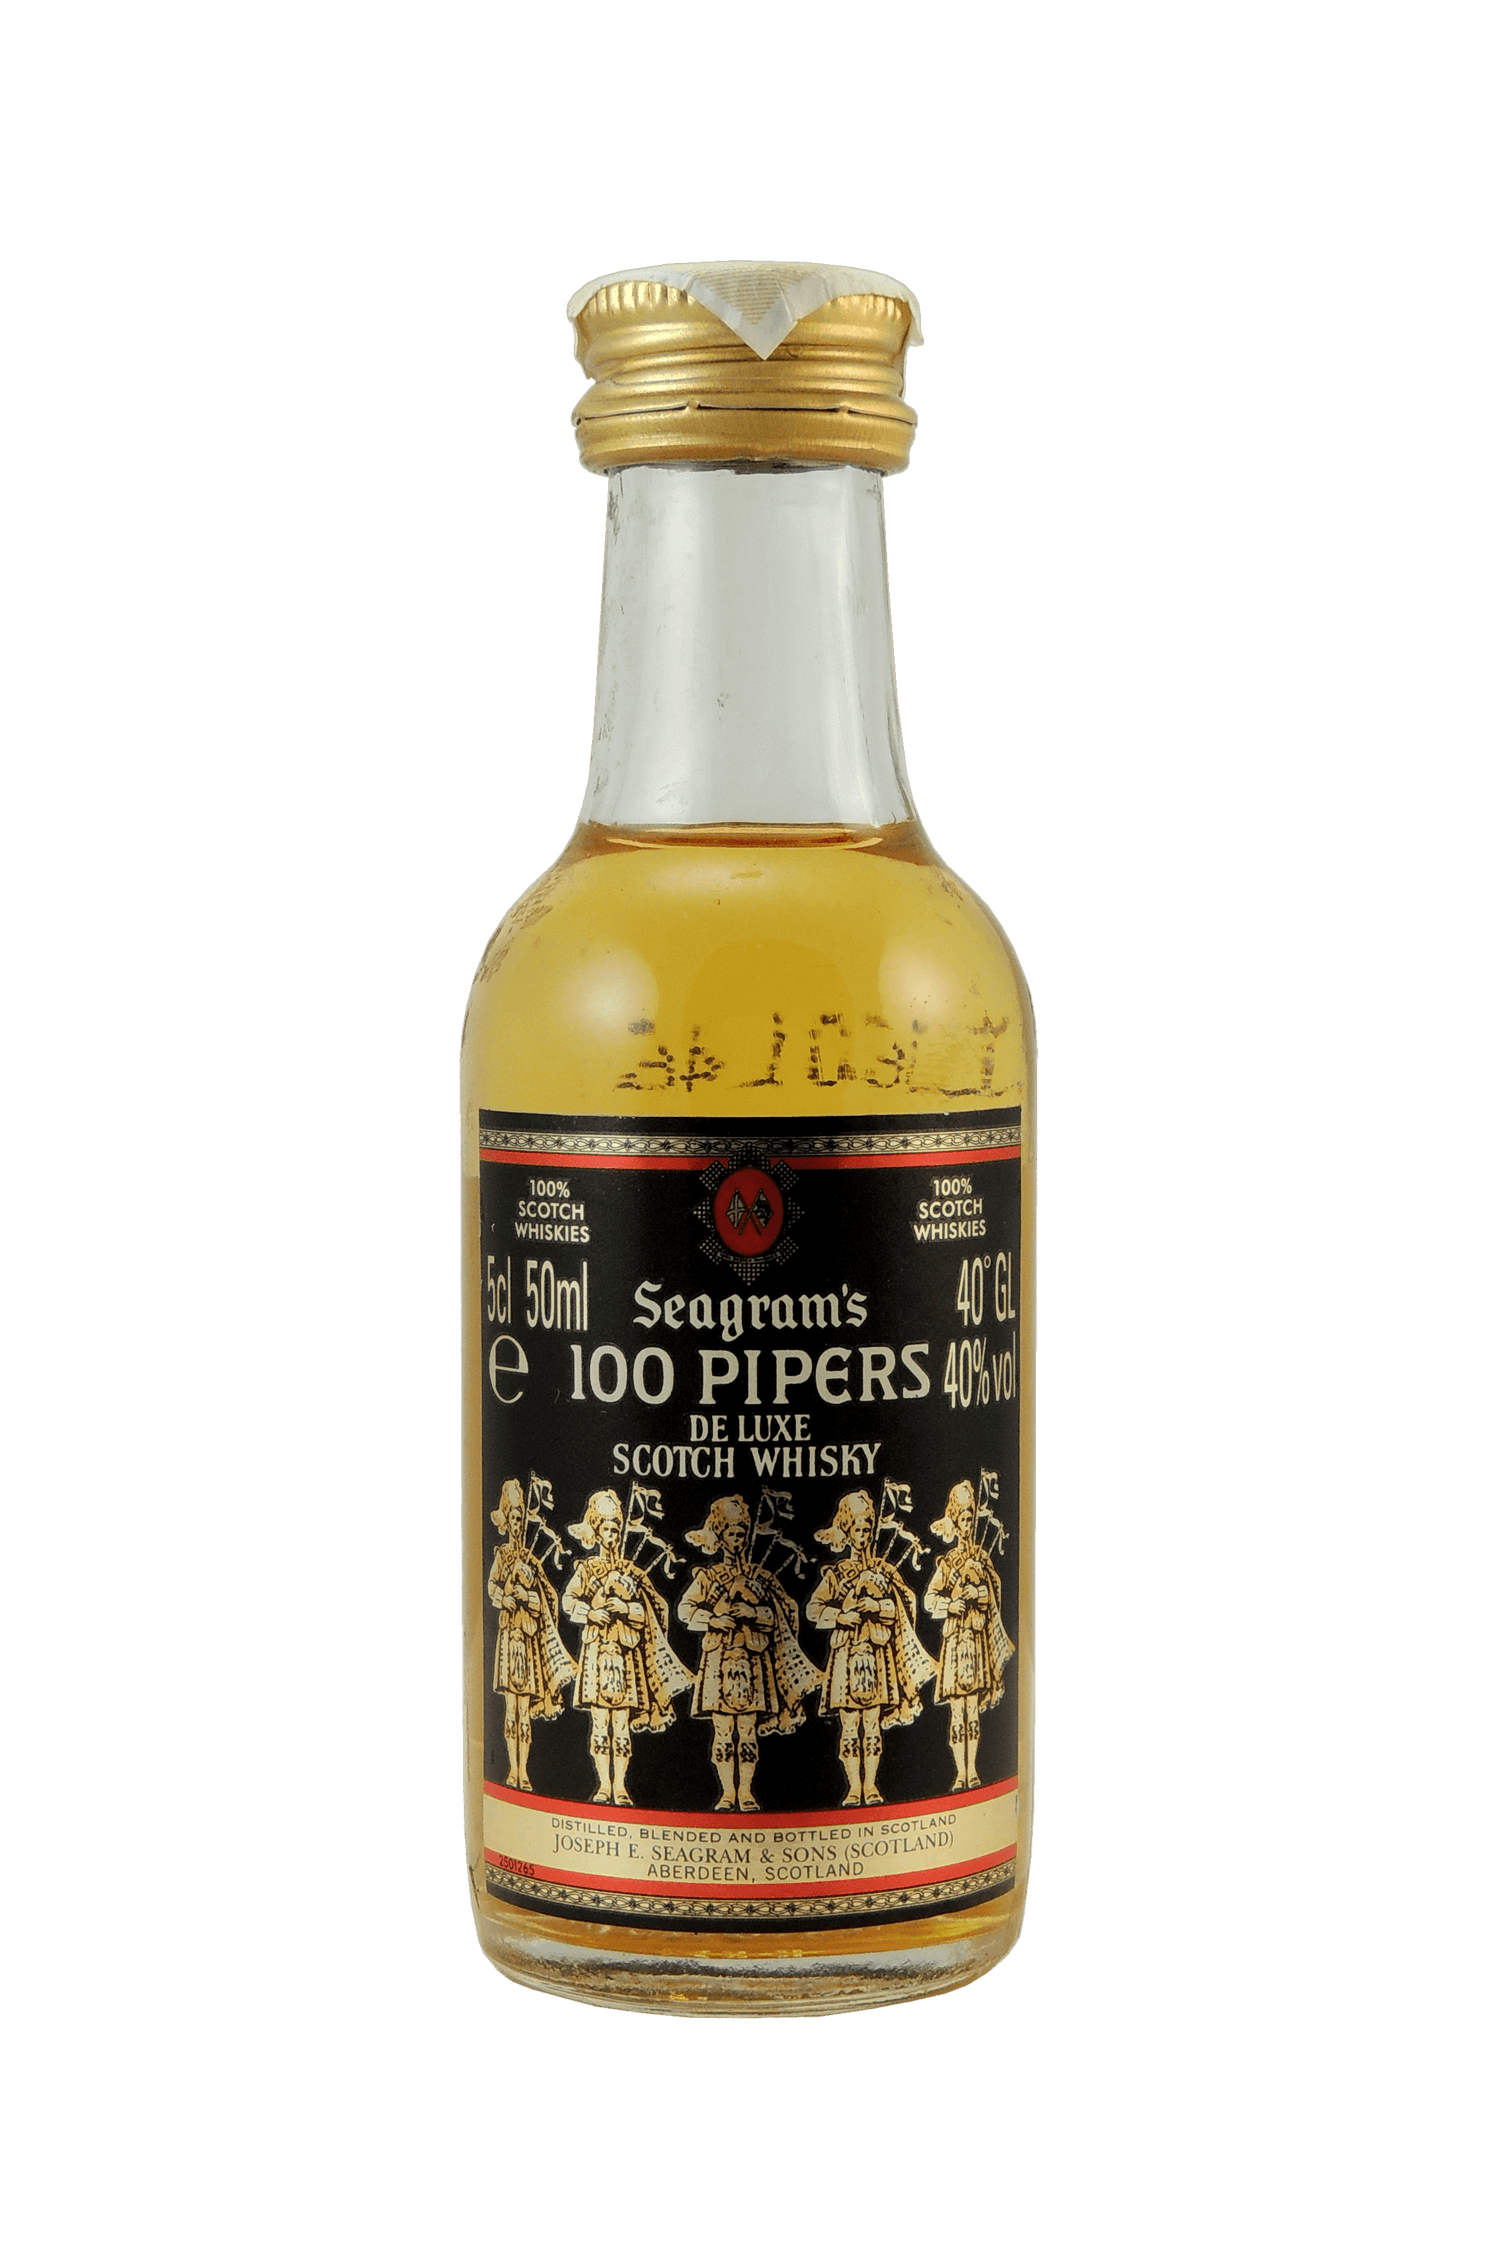 Seagram's 100 Pipers Whisky